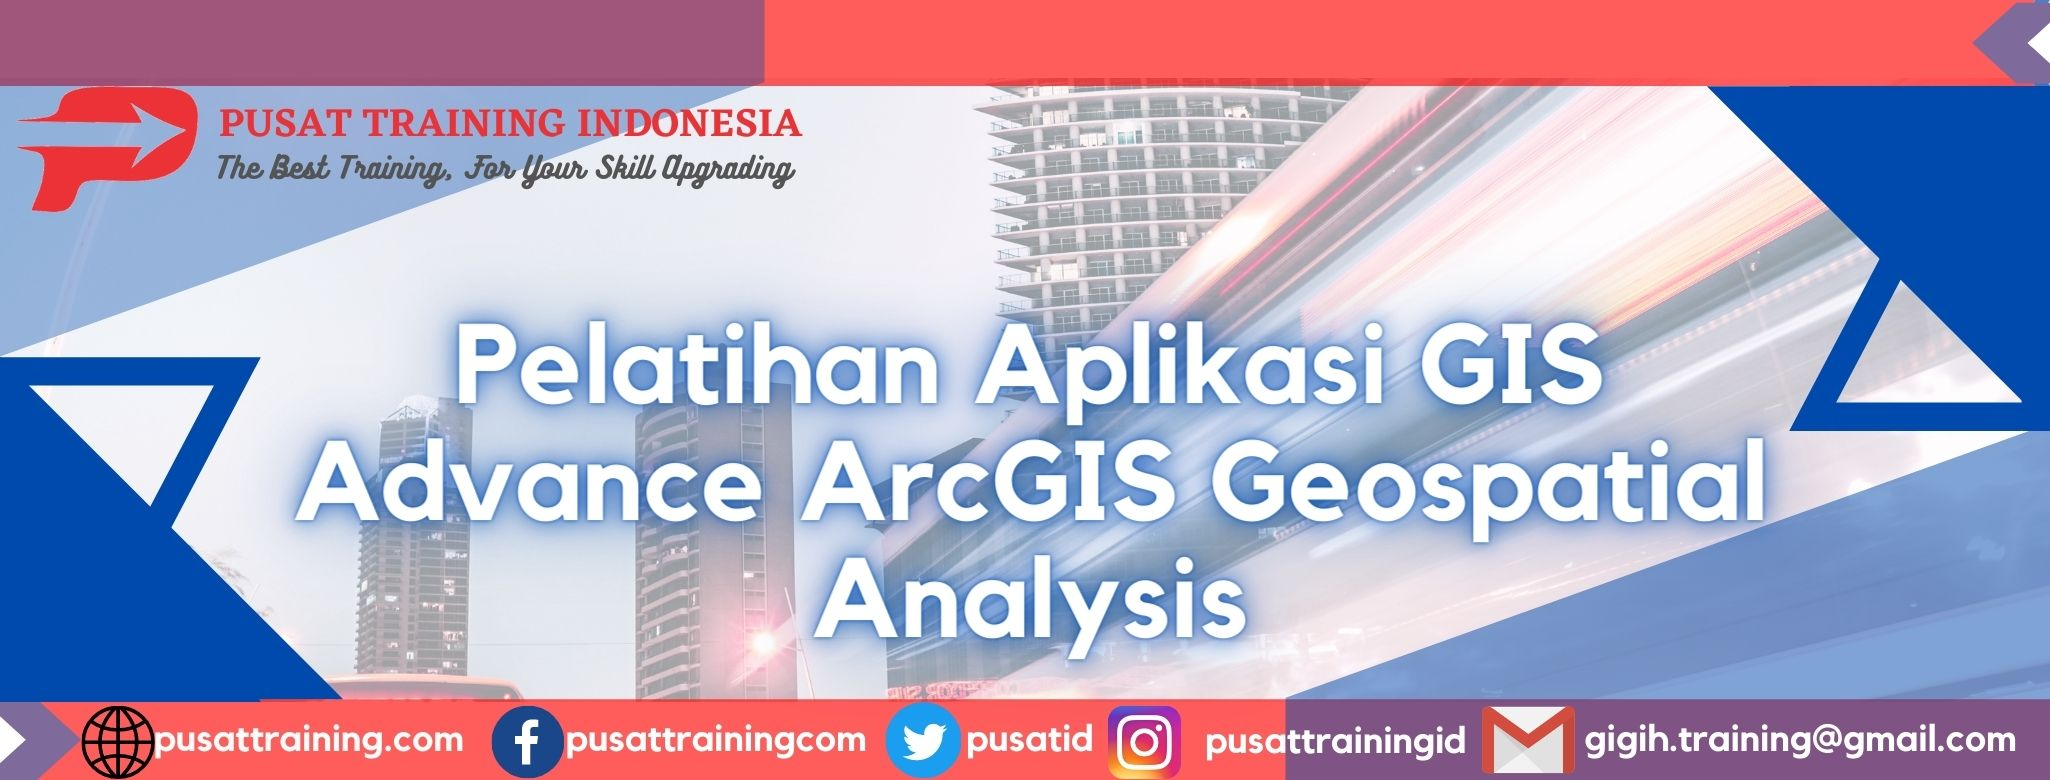 Pelatihan-Aplikasi-GIS-Advance-ArcGIS-Geospatial-Analysis